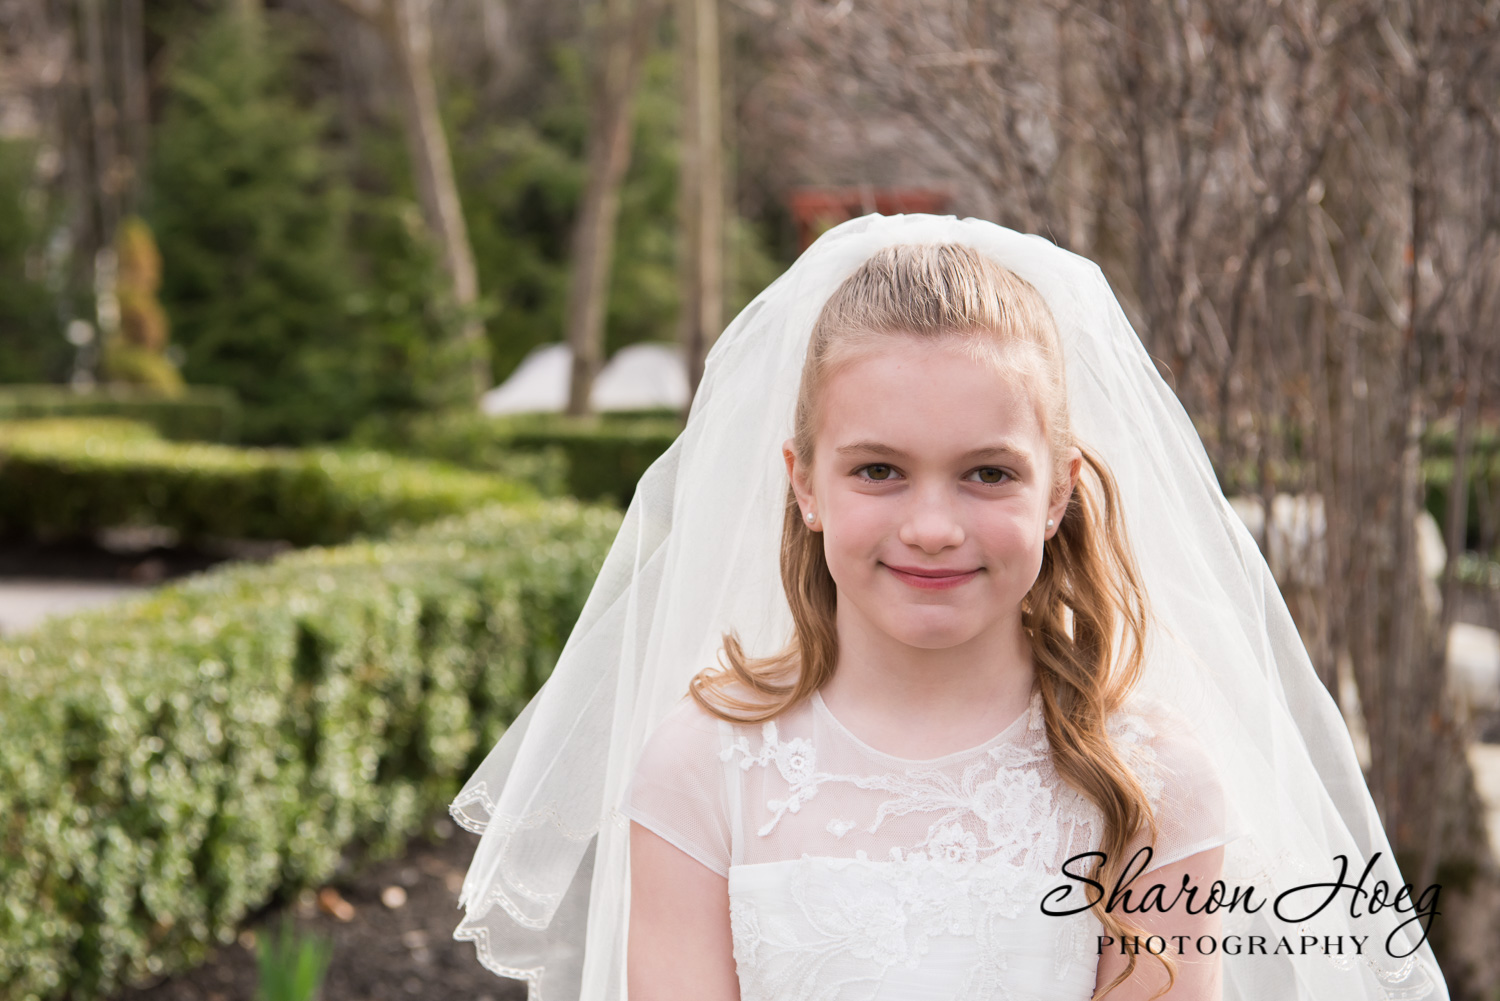 young girl white flower girl dress and veil, first communion photography metro detroit